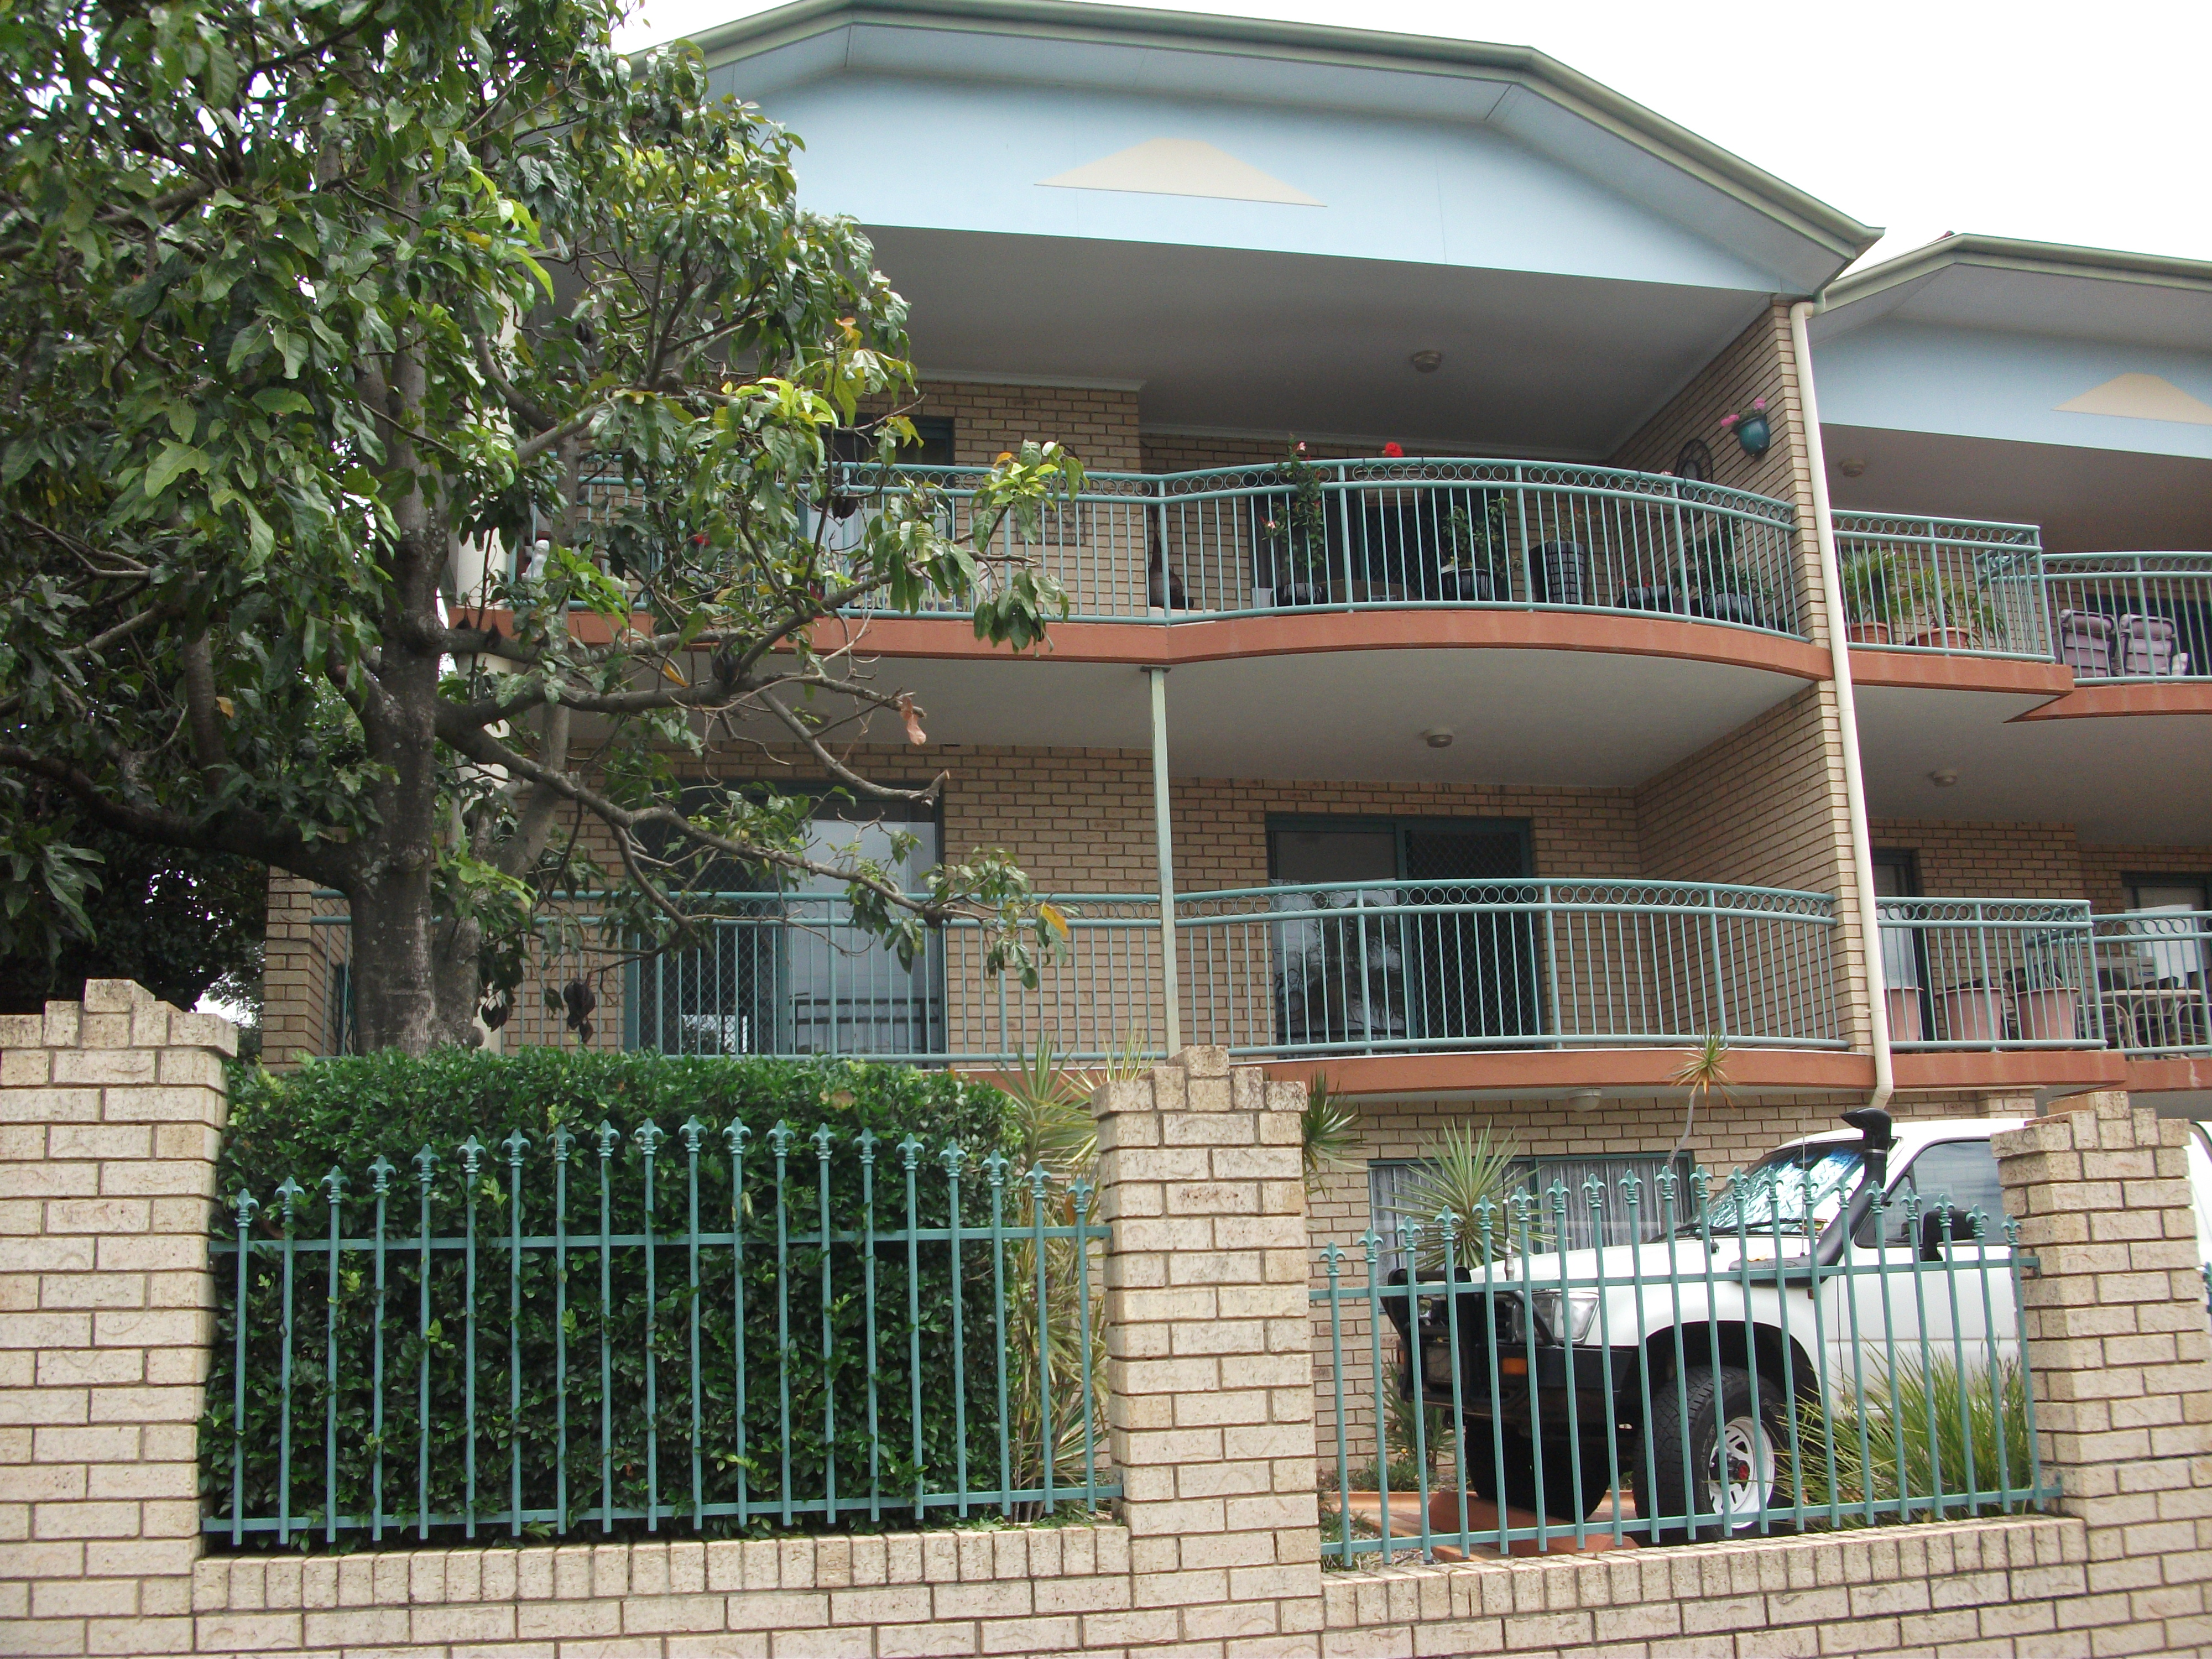 2 BED, 2 BATH, MODERN KITCHEN, TILED FLOORS.  WALK TO BUS ,SCHOOL AND PARK. $340/WK.